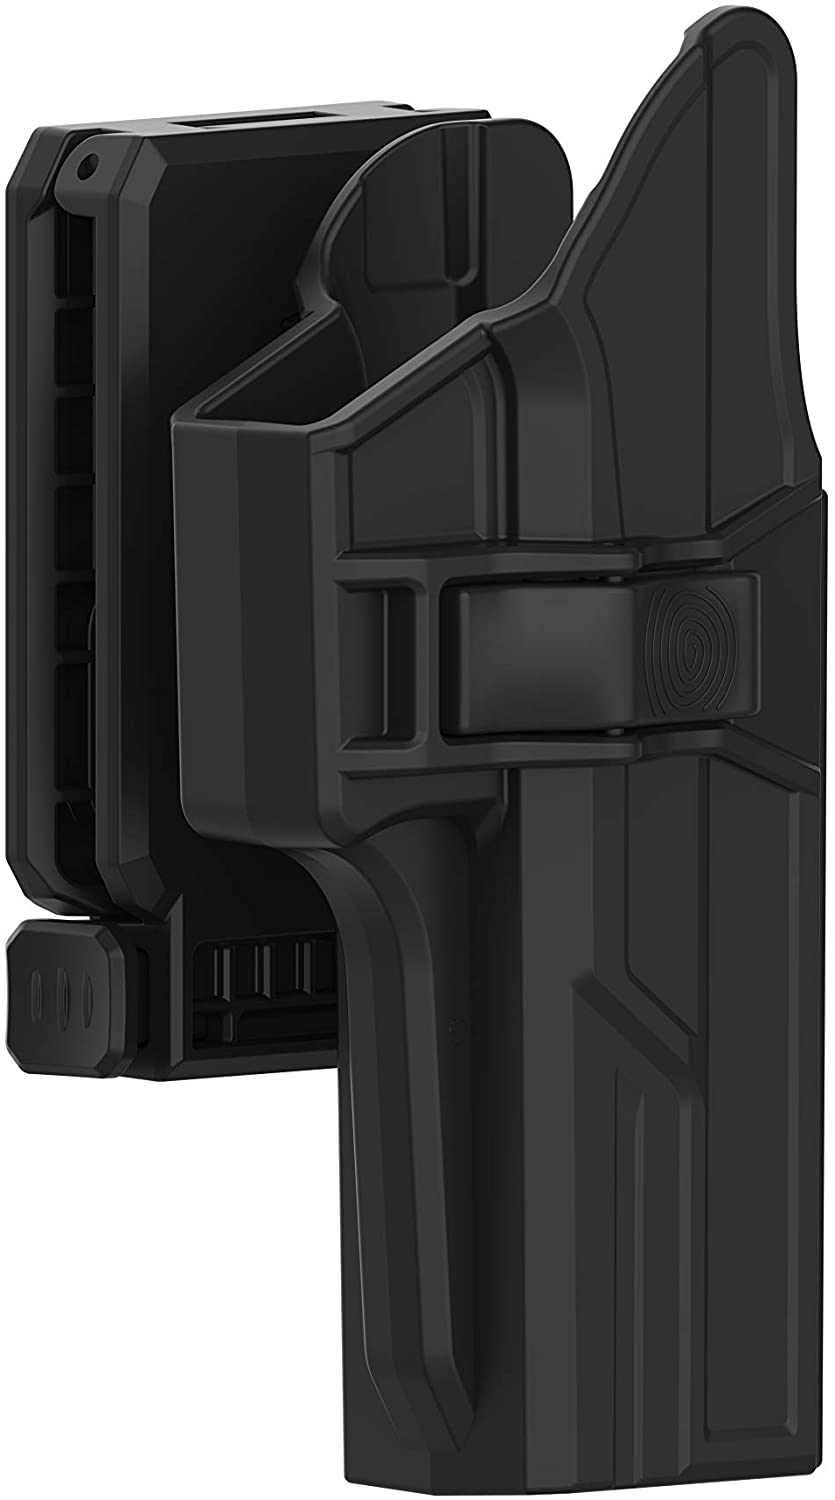 TEGE Holster for Glock 17 22 31 (Gen 1-5), 360° Adjustable Tactical Outside Waistband Open Carry Belt Holster Fit G17 G22 G31 with Rapid Release, OWB Carry, Right-Handed